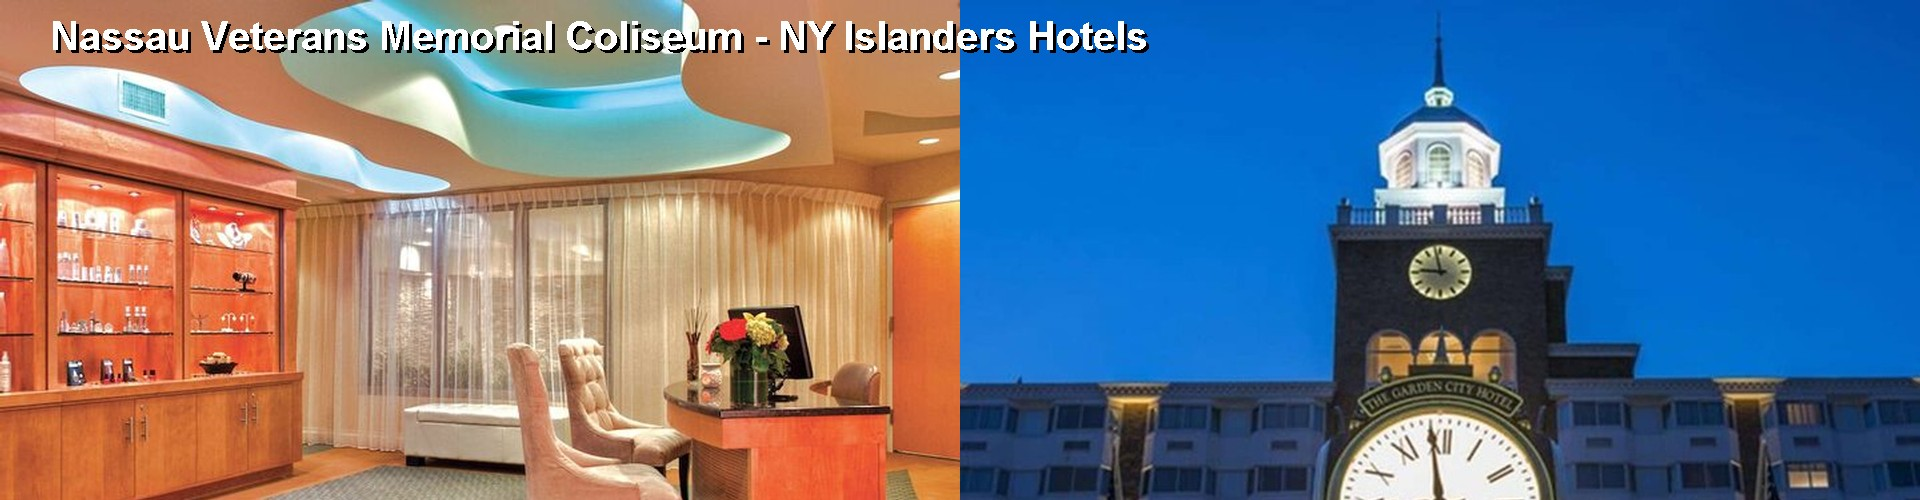 5 Best Hotels near Nassau Veterans Memorial Coliseum - NY Islanders